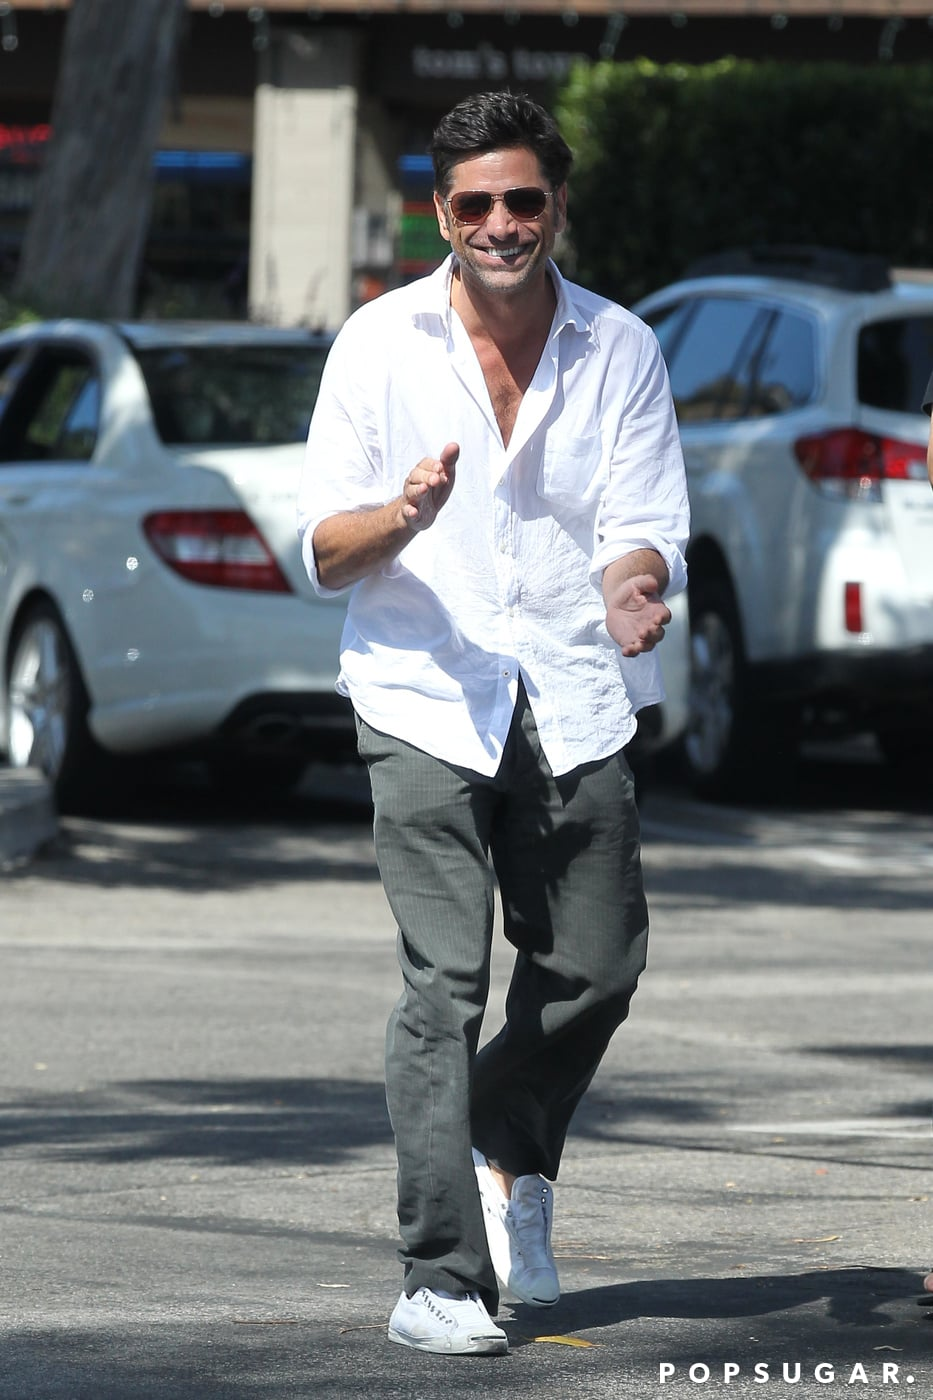 Confirmed: Uncle Jesse Is Still Hot, and Joey Is Still Goofy